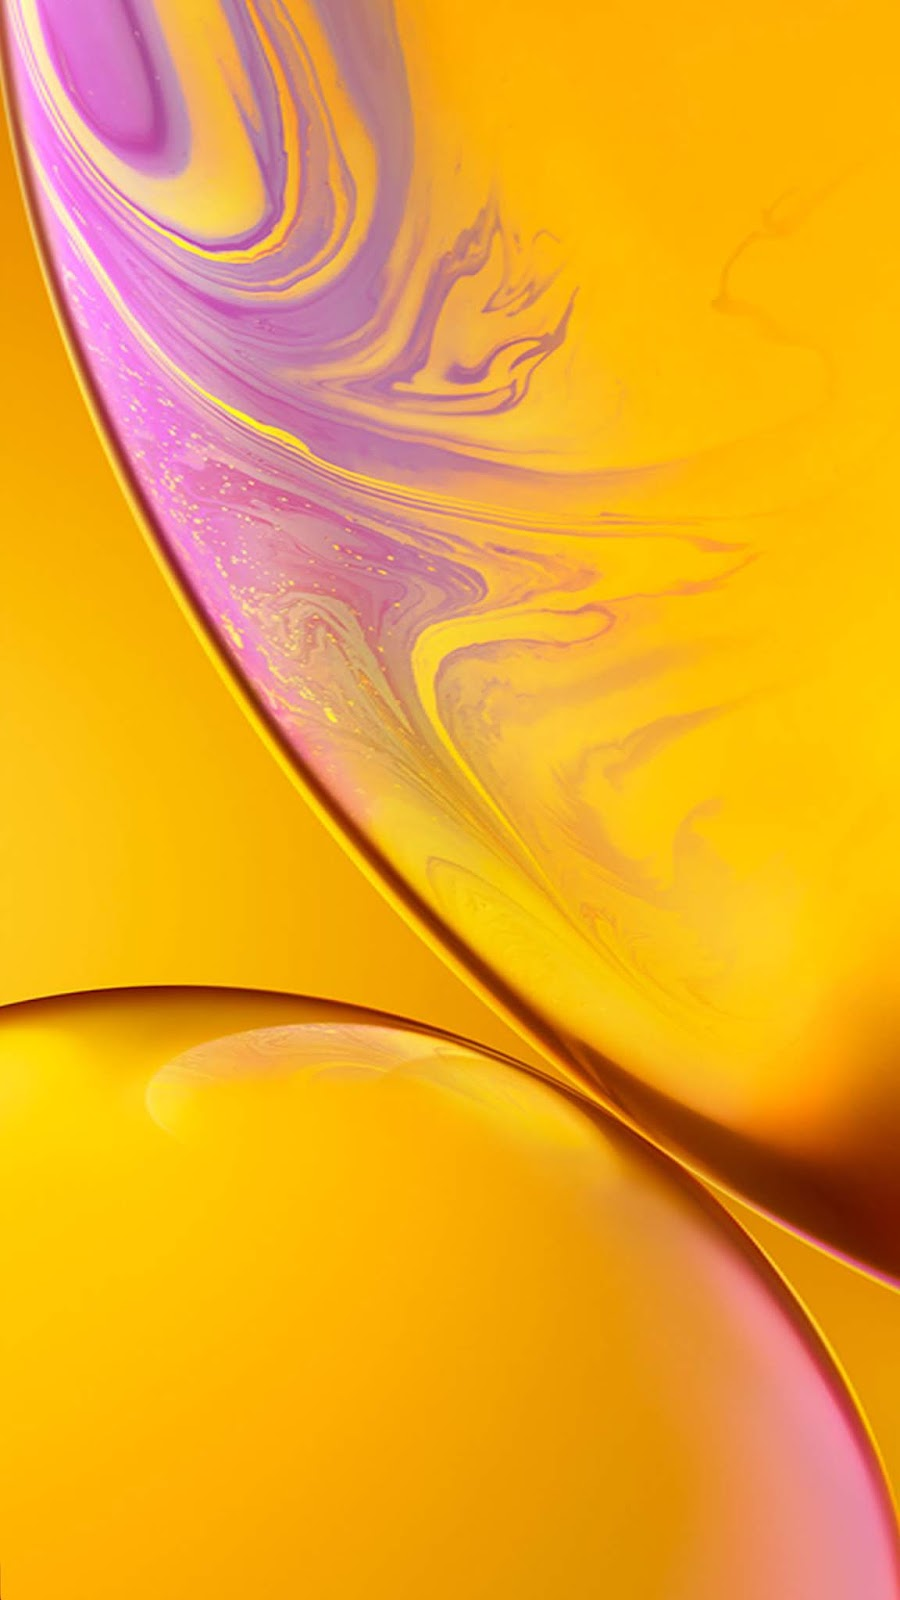 Best iPhone XS notch wallpaper